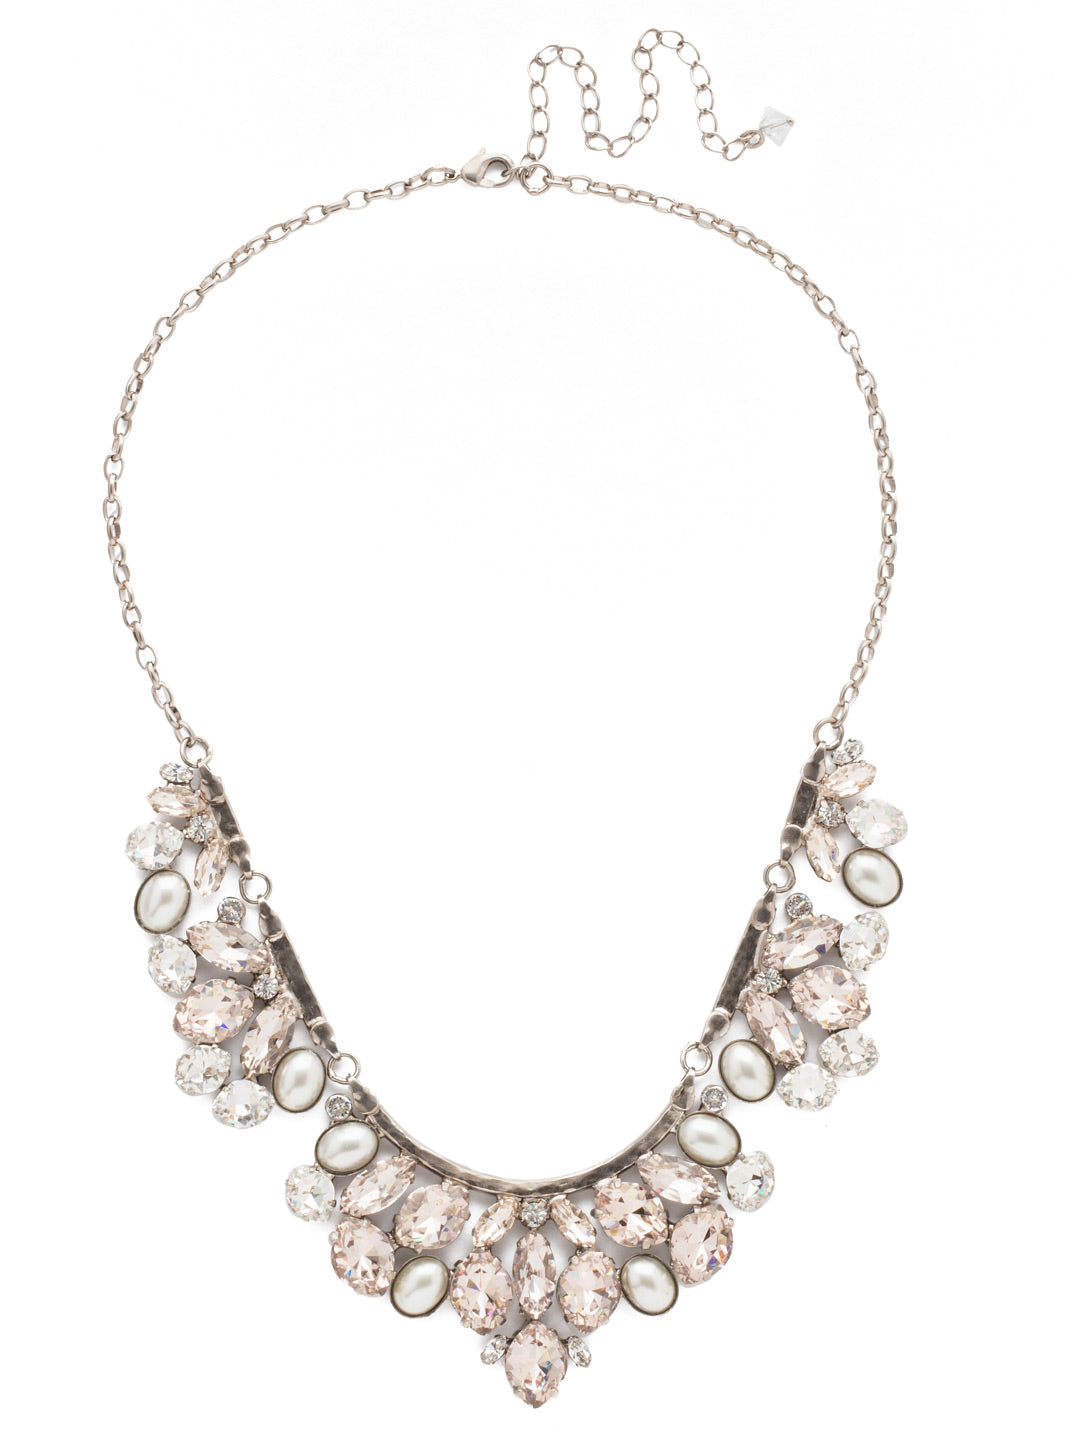 Floral Crystal Cluster Classic Necklace - NCY2ASPLS